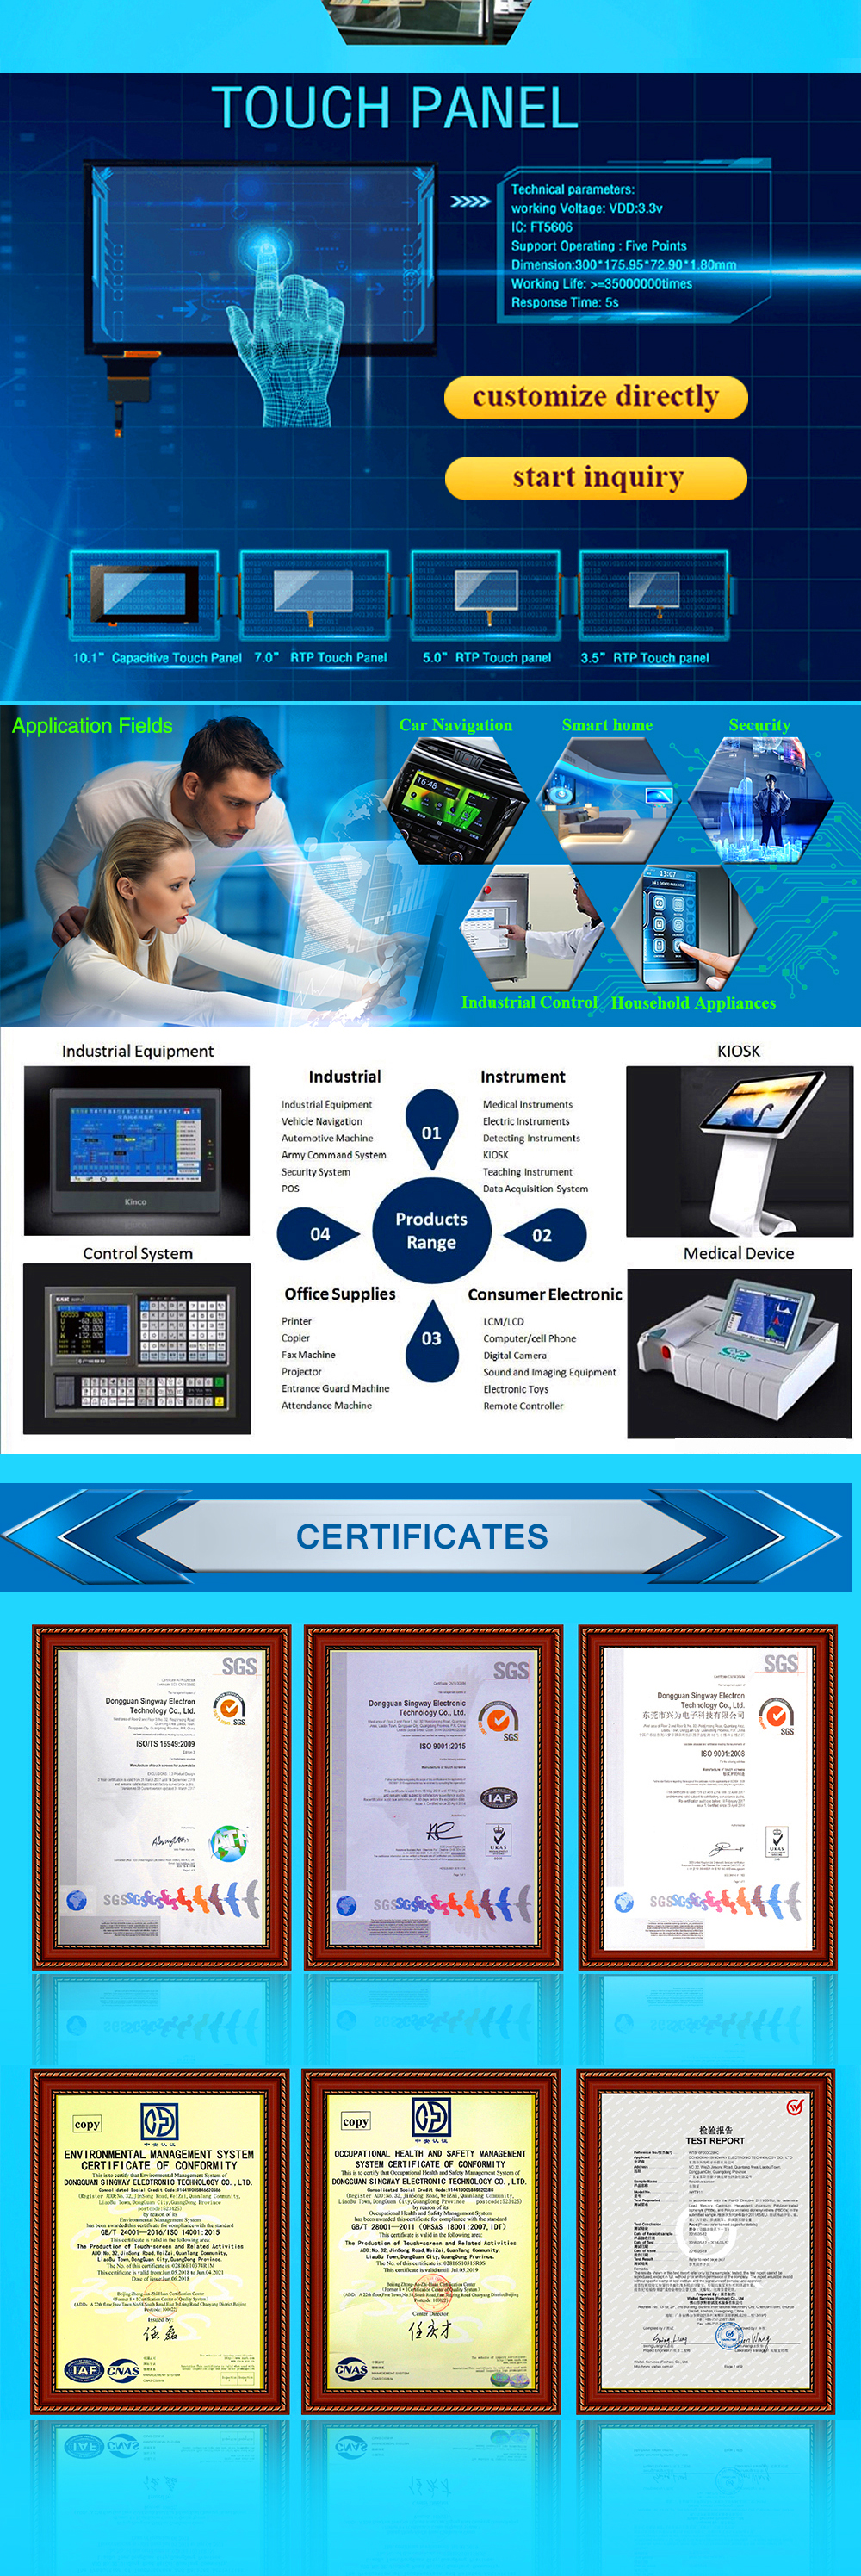 Standard 4.3 인치 capacitive touch screen touch panel 대 한 산업 control system